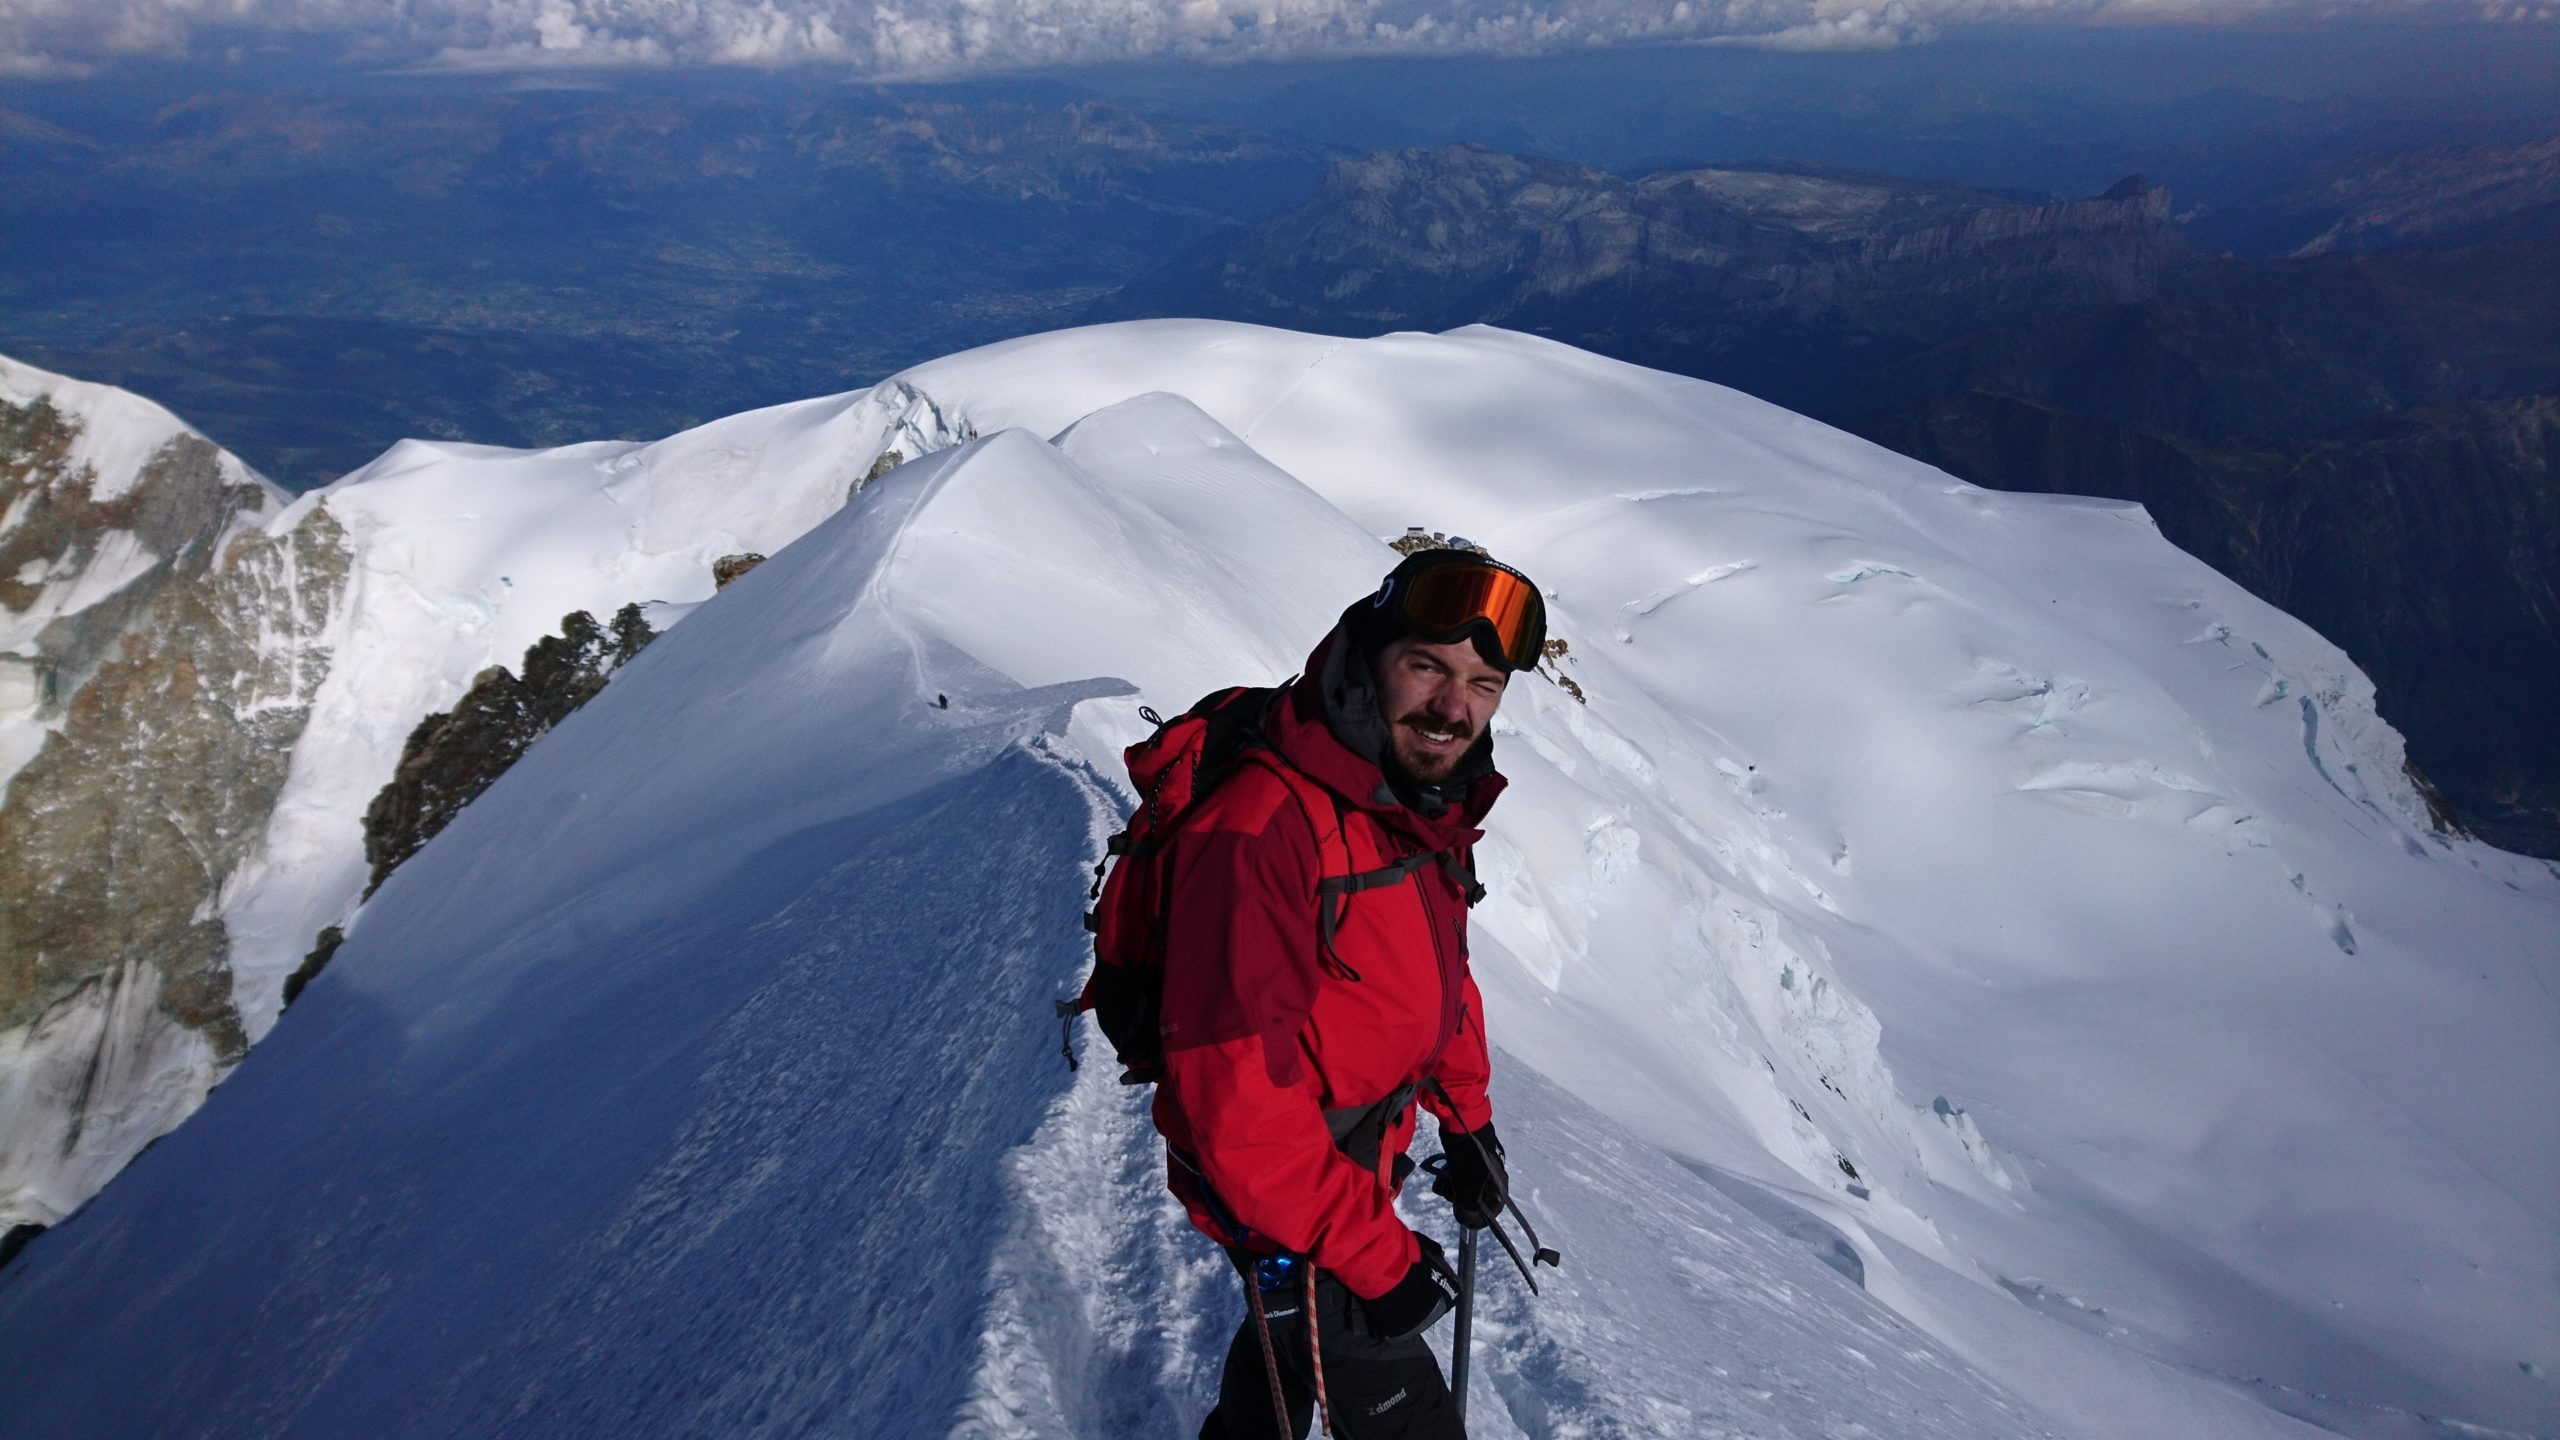 Descending from the Mont Blanc summit © Andrea Cararo